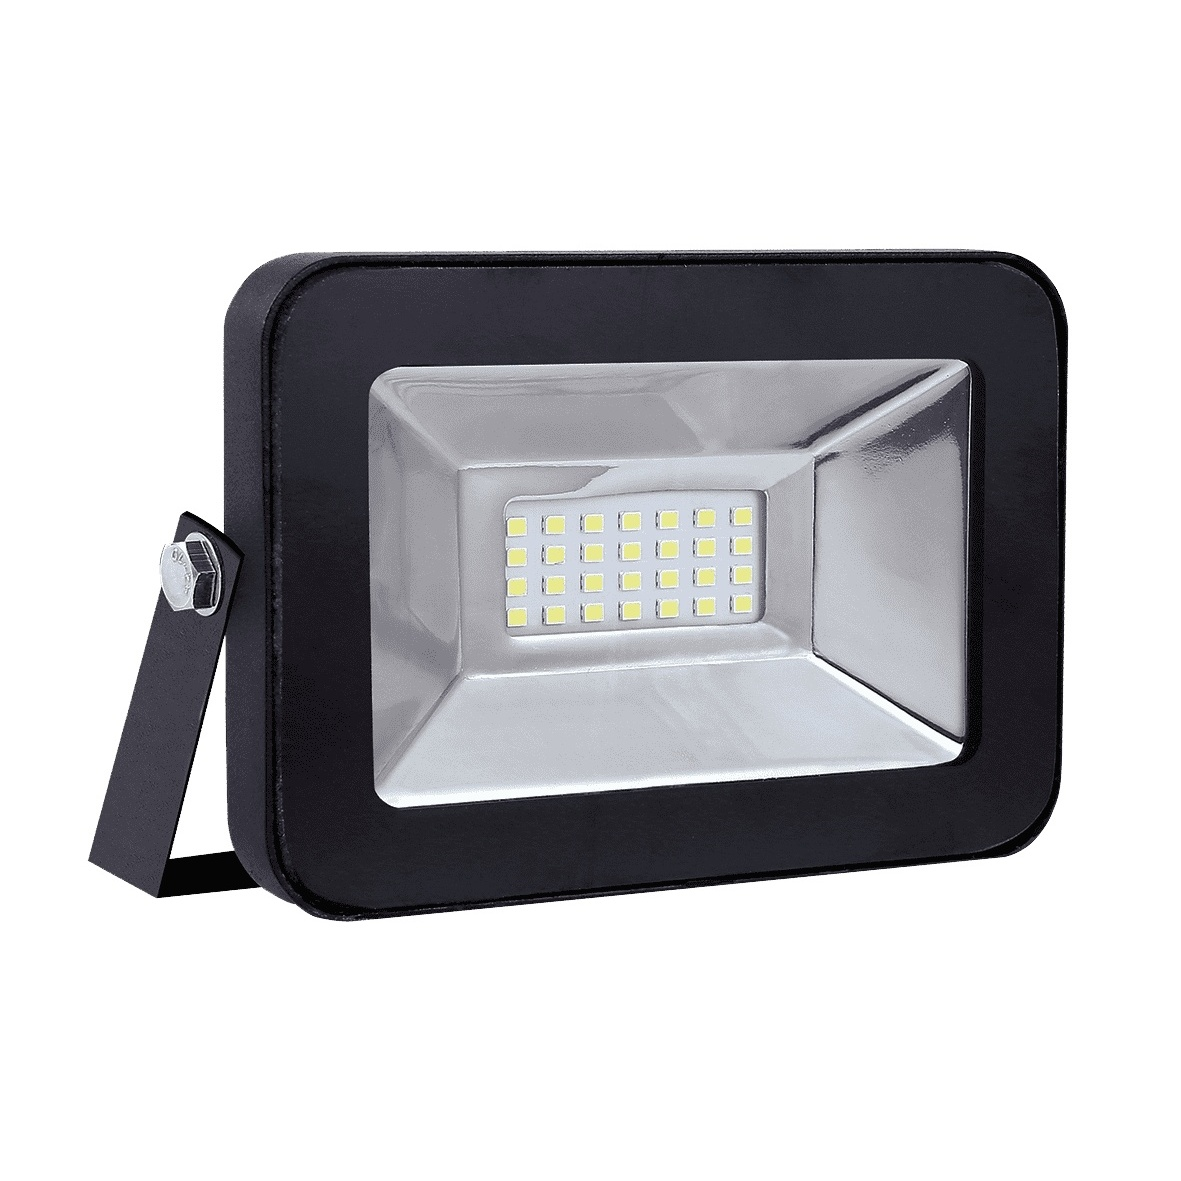 Floodlight сдо-5-10 Pro Series Led 10w IP65 6500 K 750lm LLT 4690612005355